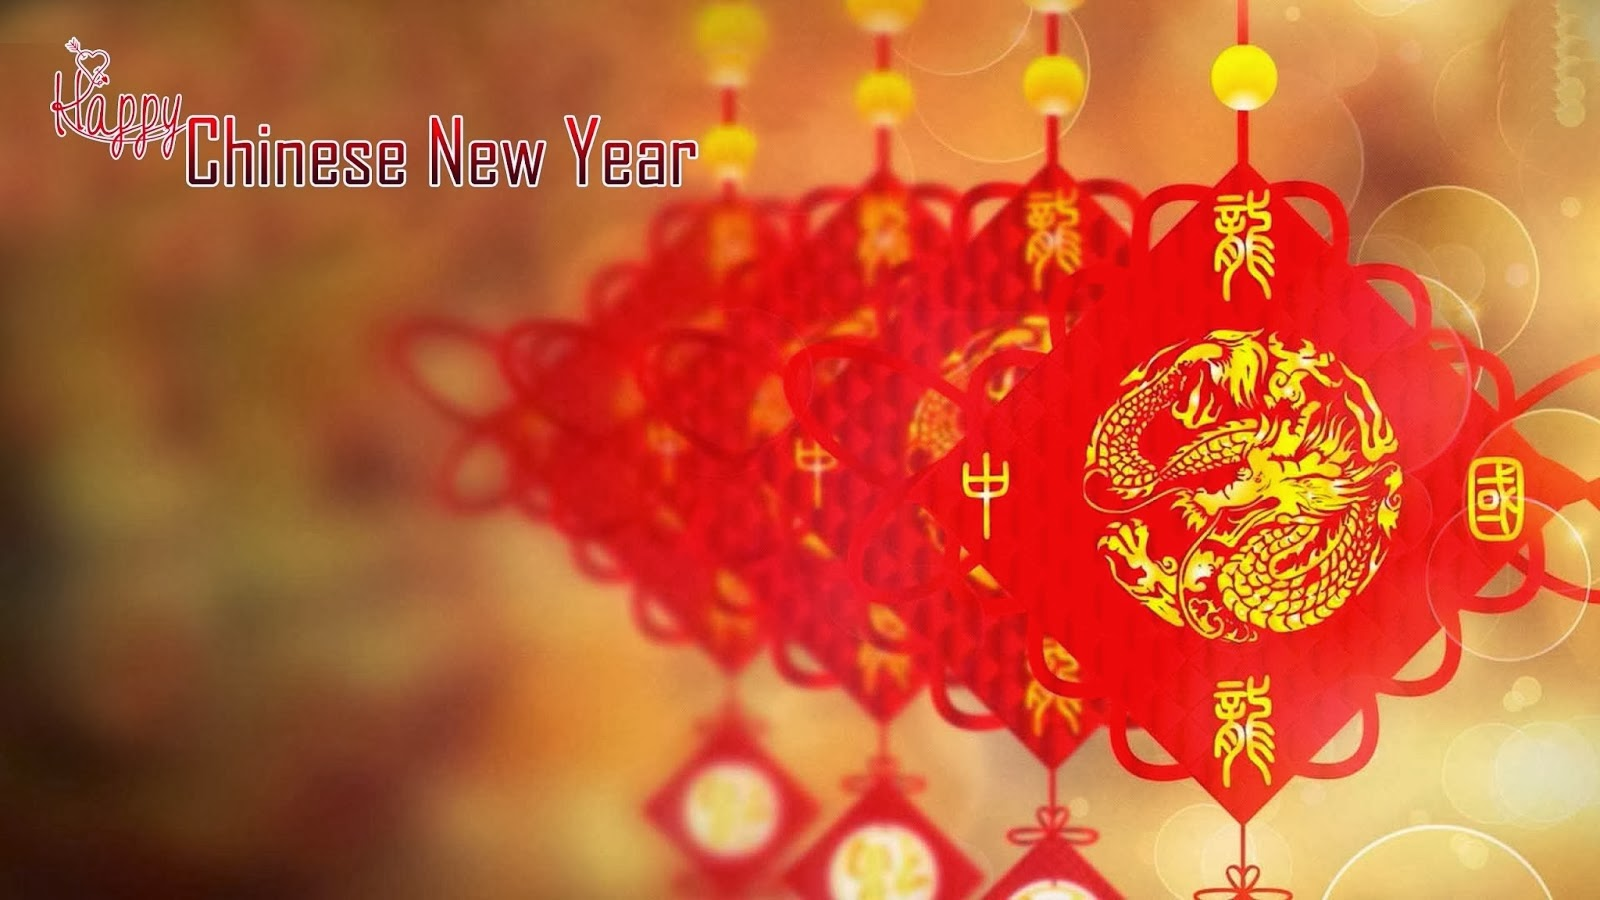 Ethiopian new year wallpapers labzada wallpaper source card new year quotes merry christmas and happy new year 2018 m4hsunfo